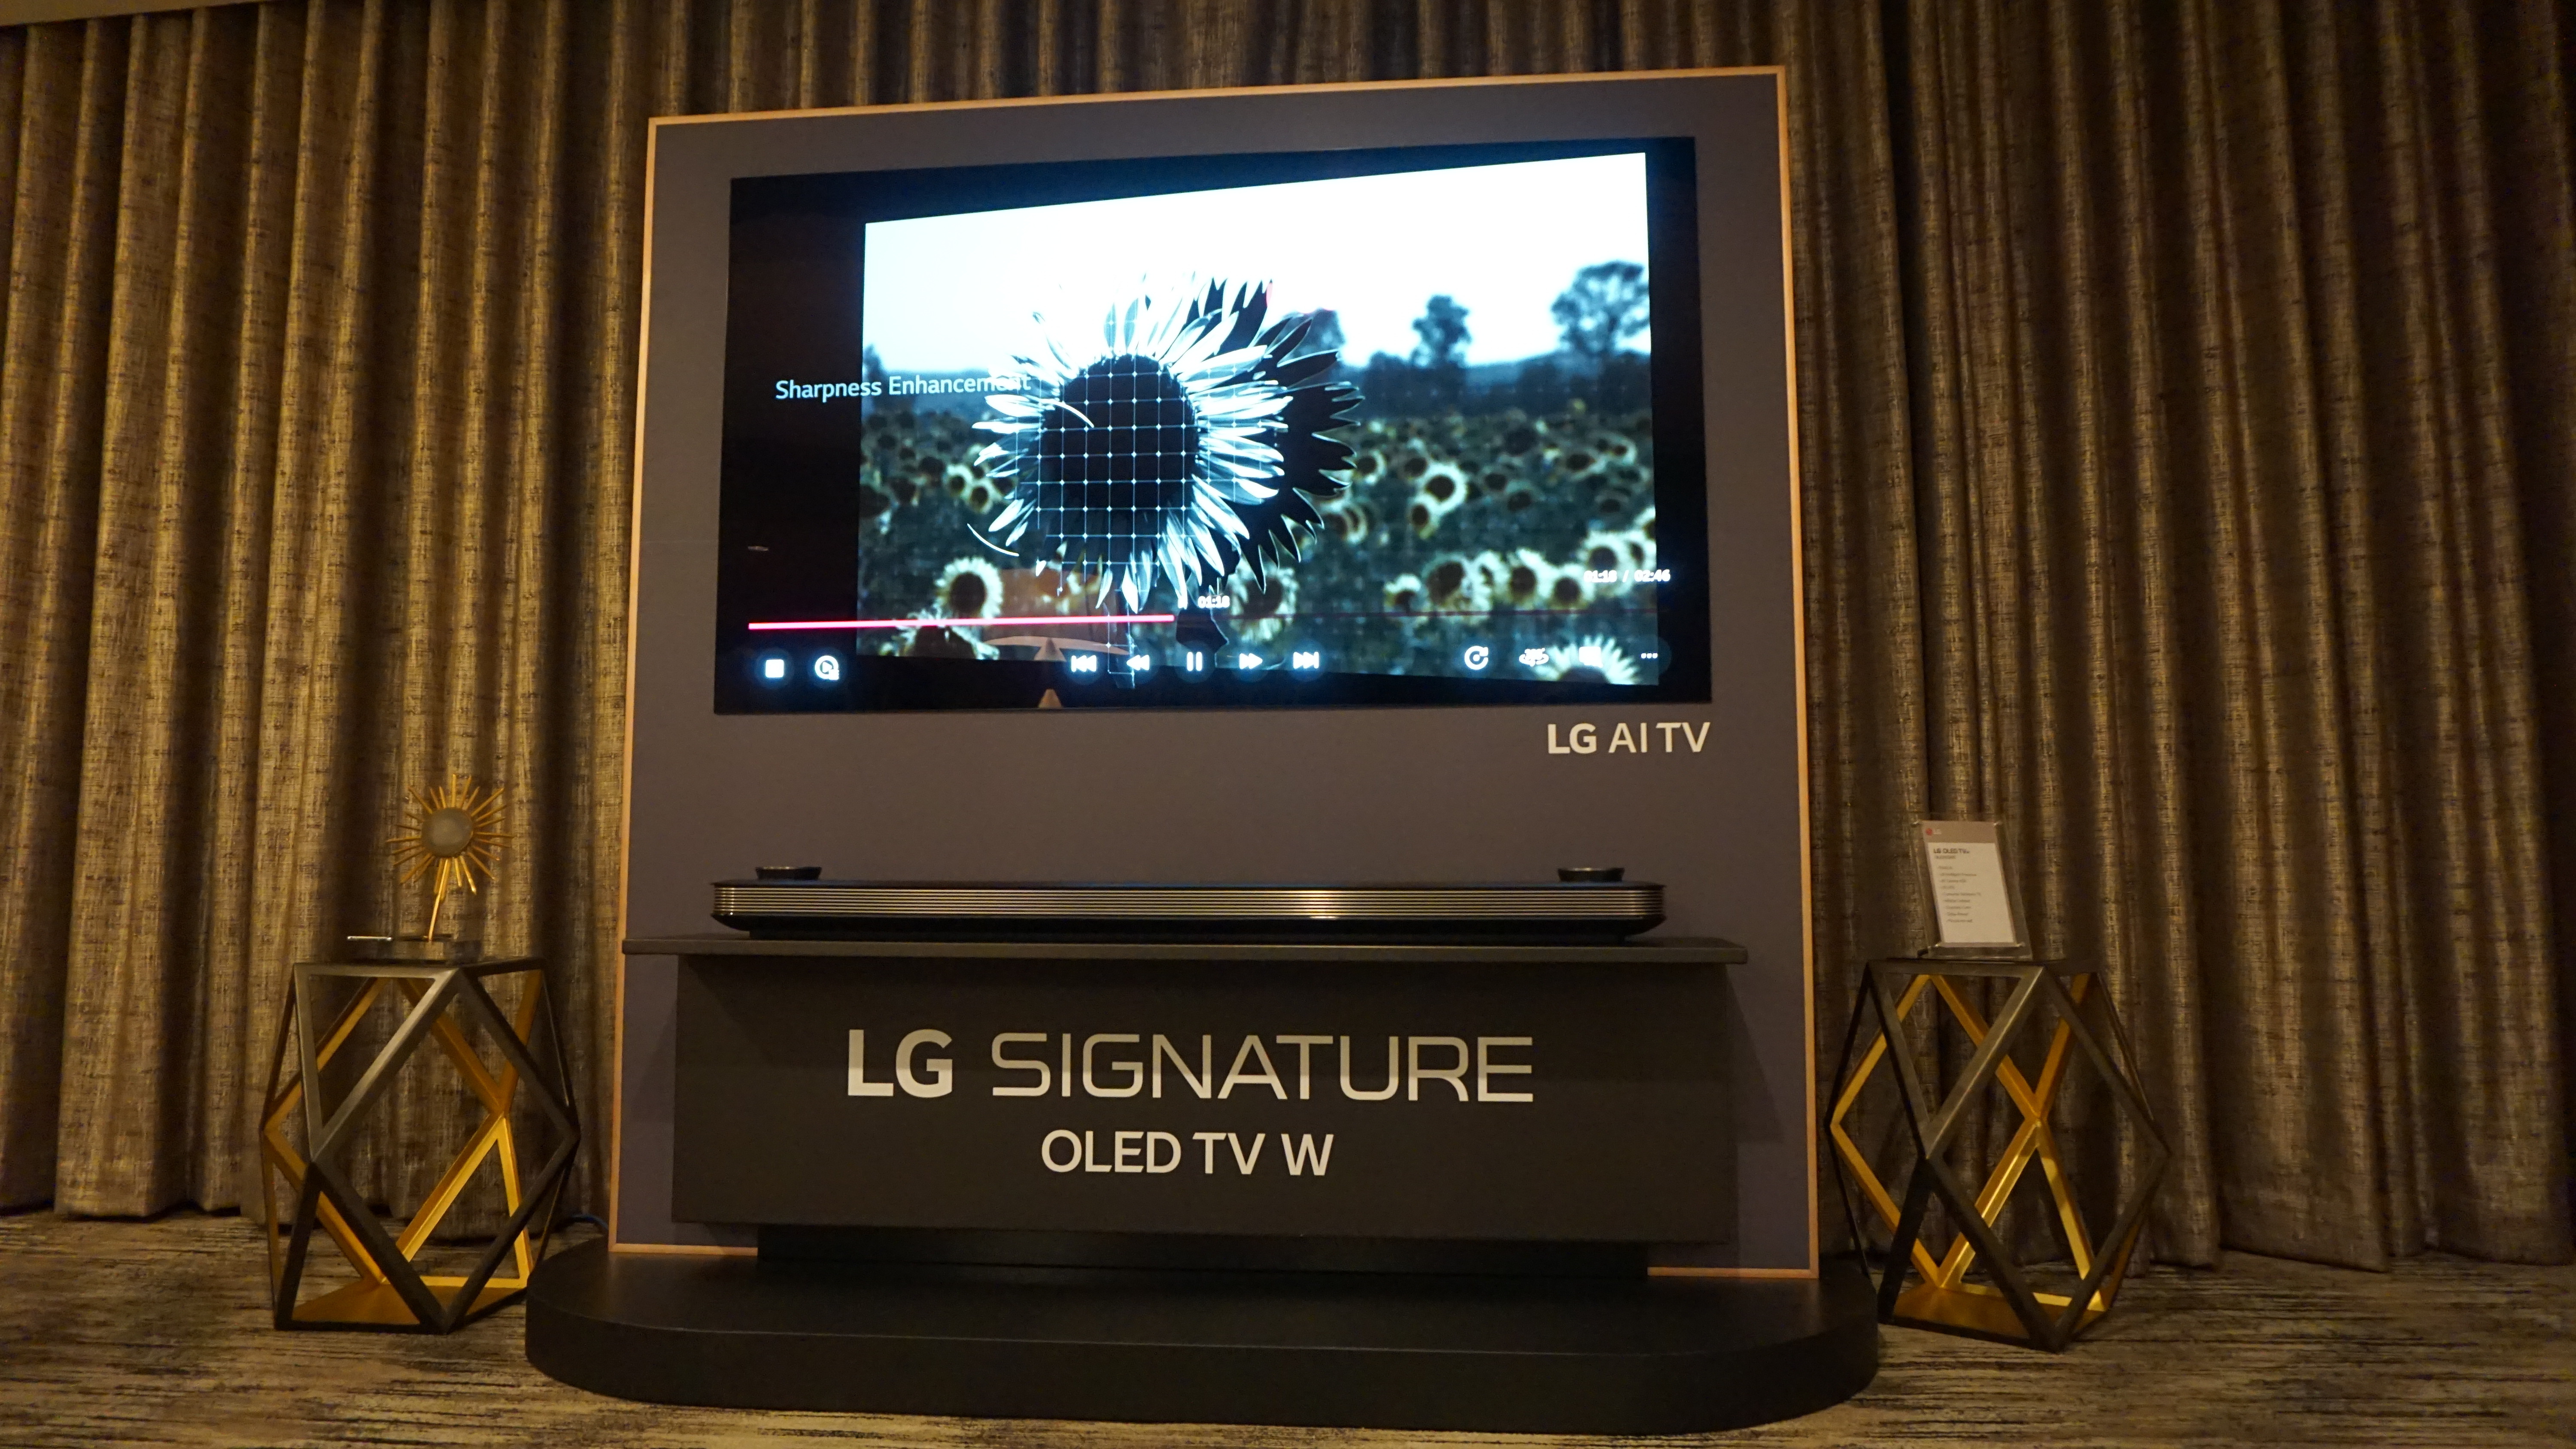 lg oled w8 signature series. Black Bedroom Furniture Sets. Home Design Ideas